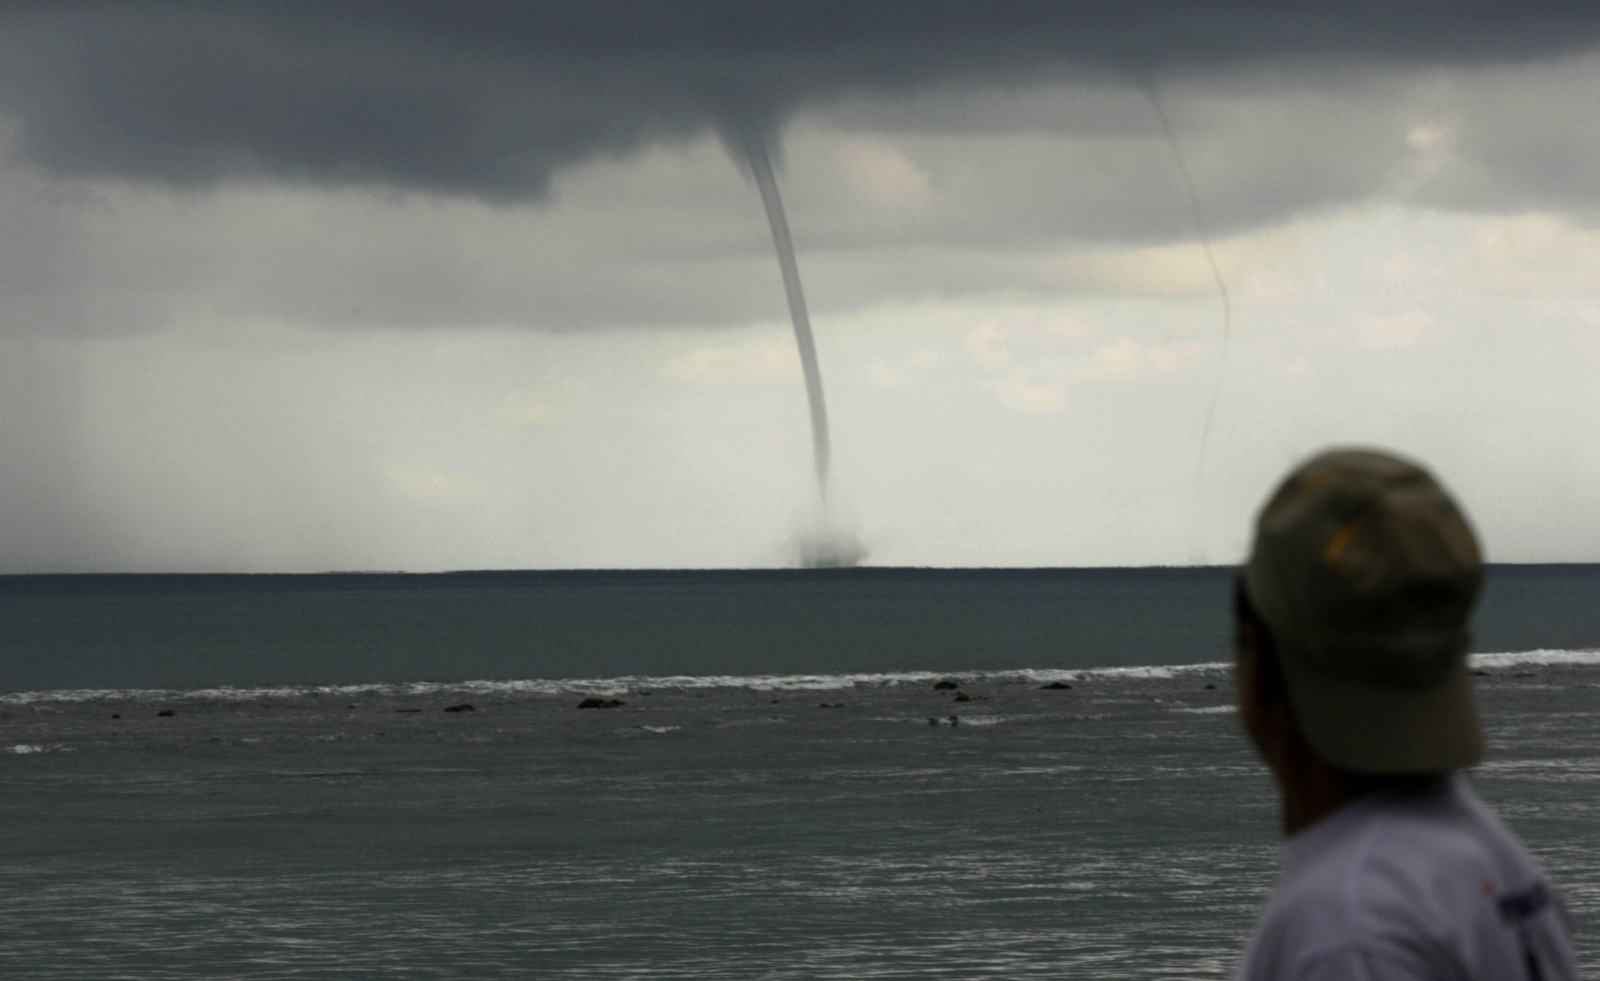 Waterspout seen off coast of Thorpeness in Suffolk